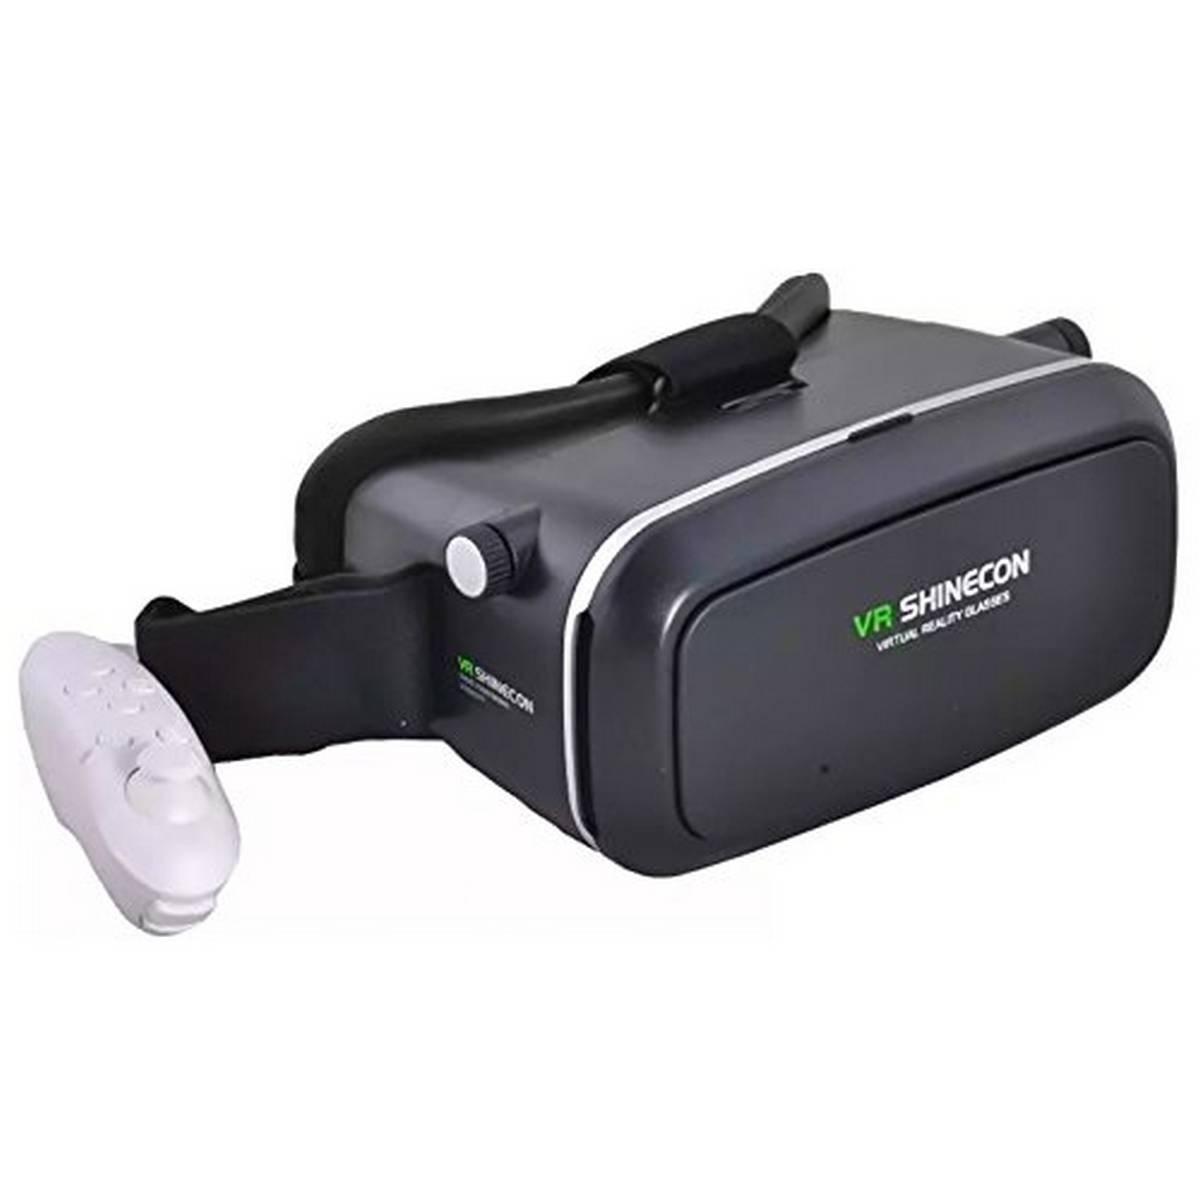 3D Glasses Adjust VR BOX with remote Real Stereoscopic Immersive Movies and Games Experience - mobile VR Box - Adjustable slot, fits 3.5 - 5.5 inch phones